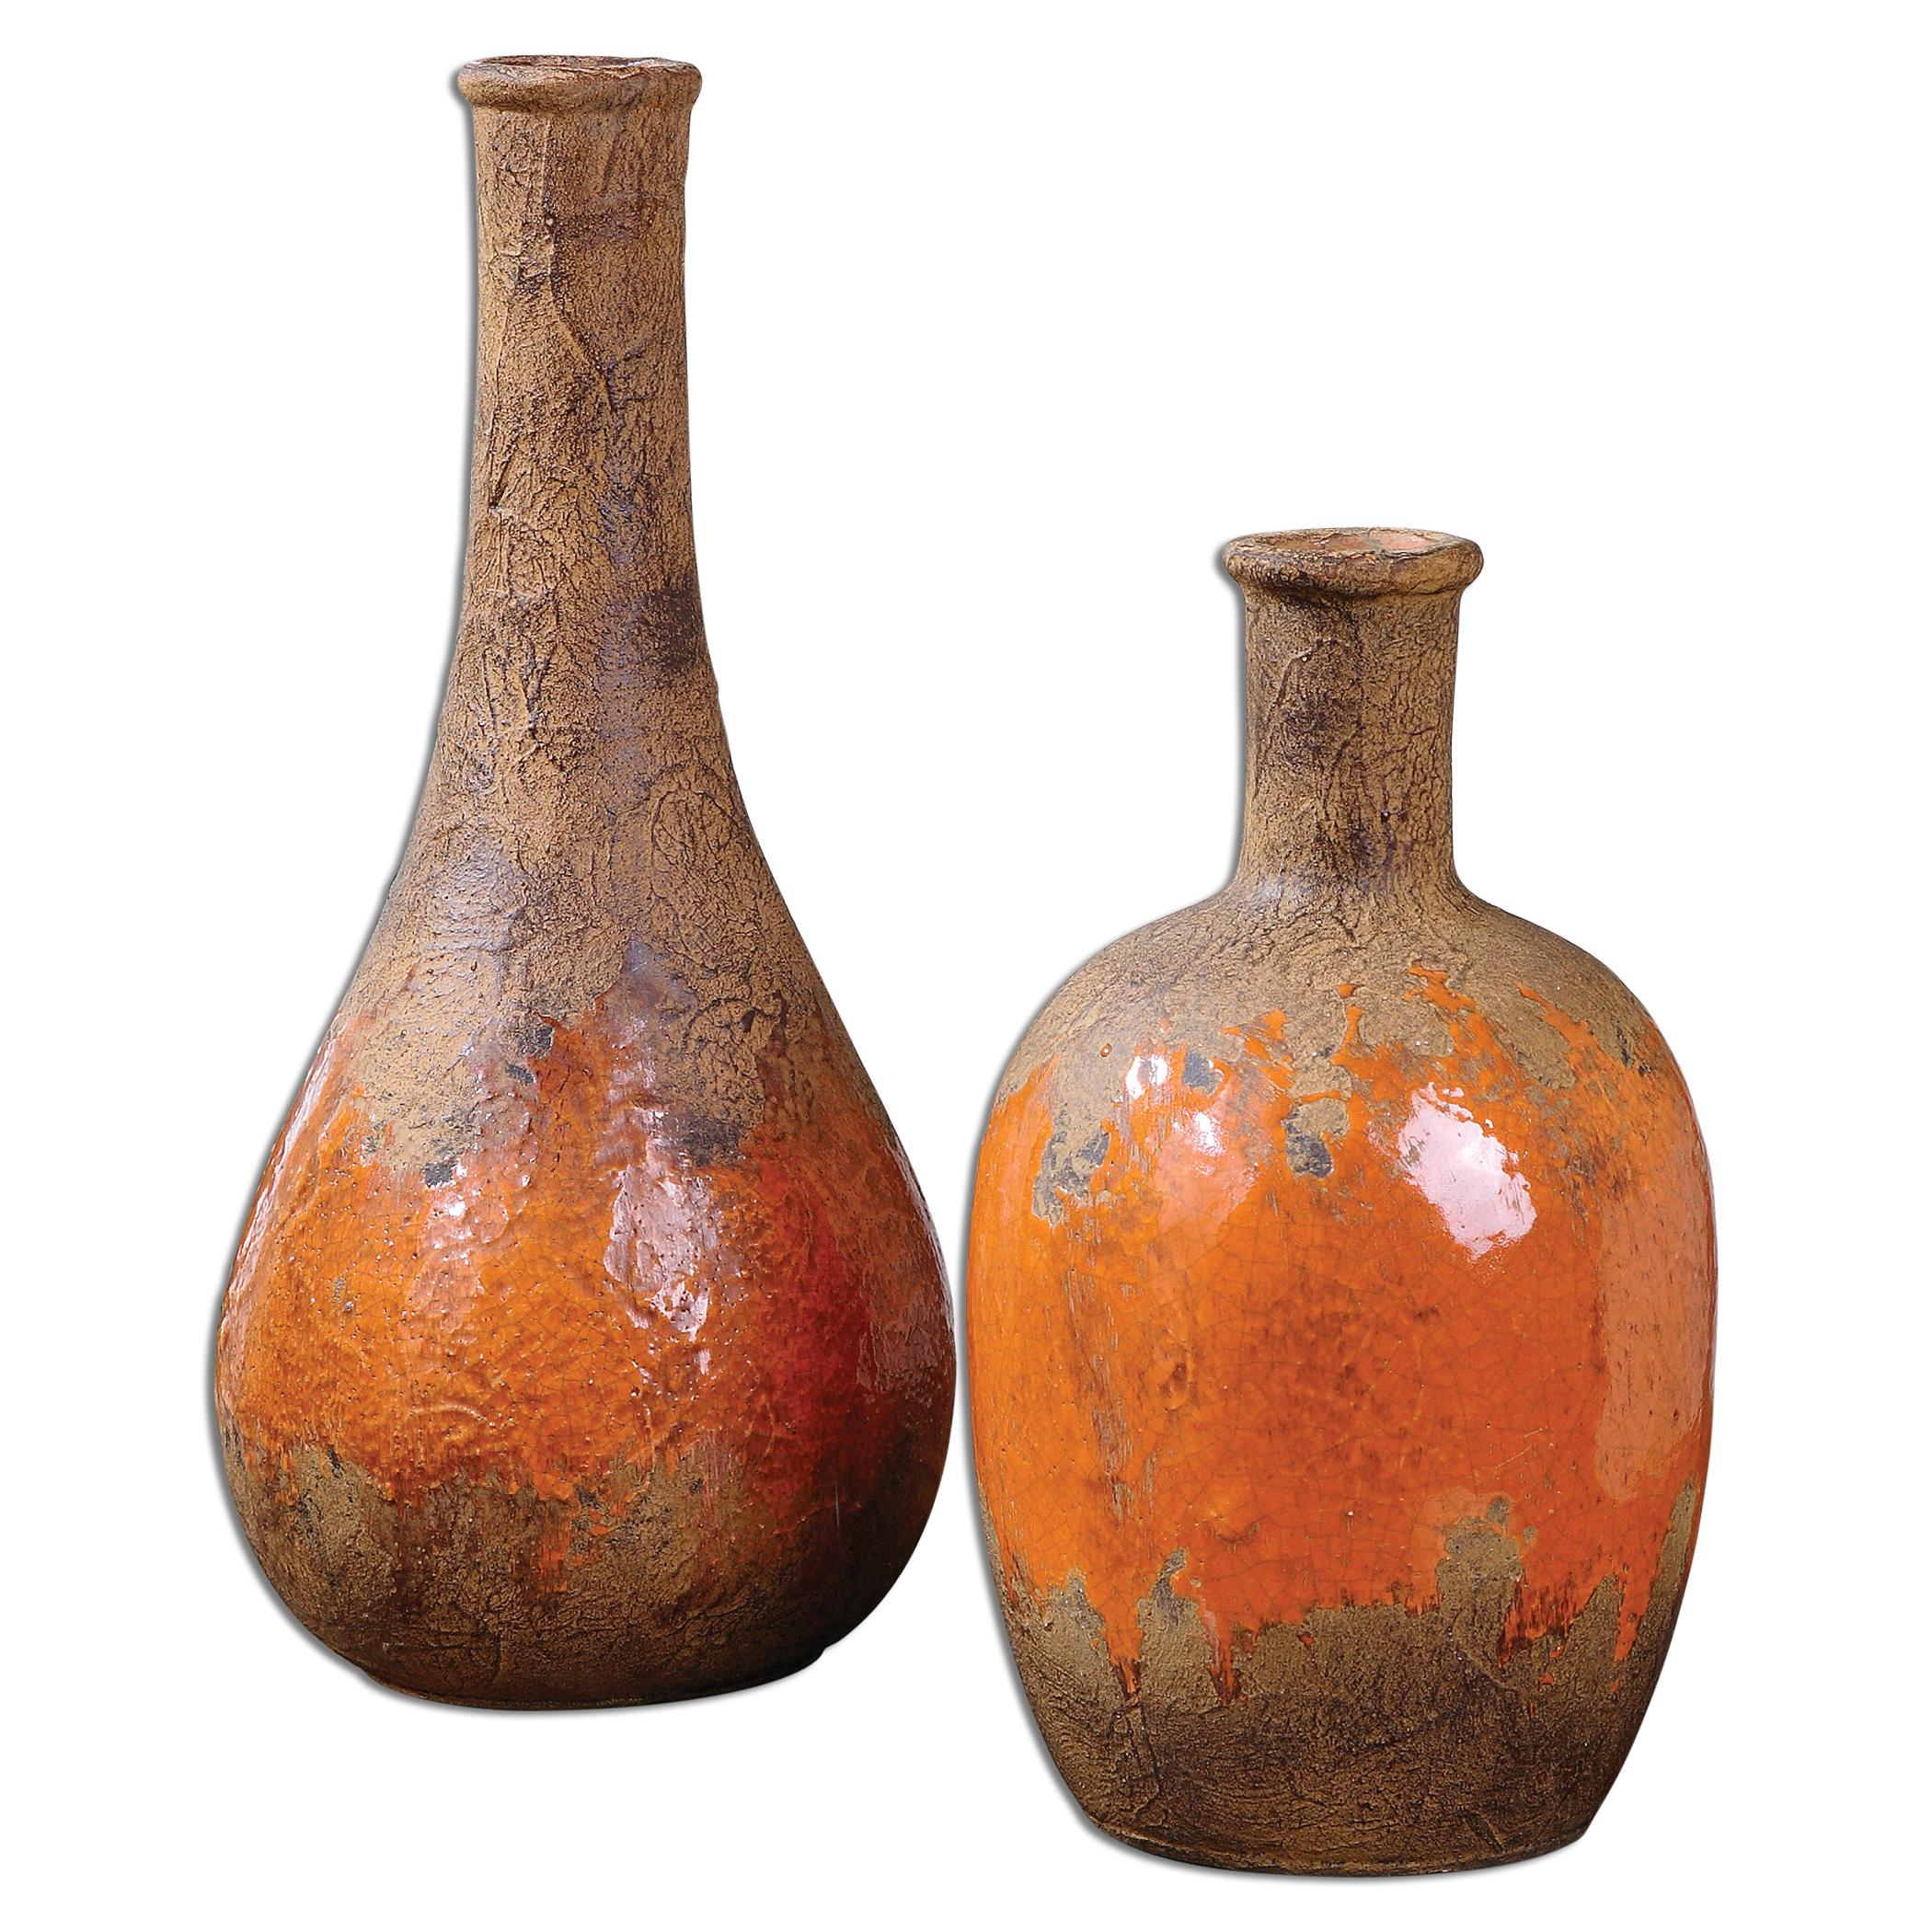 Accessories - Vases and Urns Kadam Ceramic Vases, Set of  2 by Uttermost at Mueller Furniture